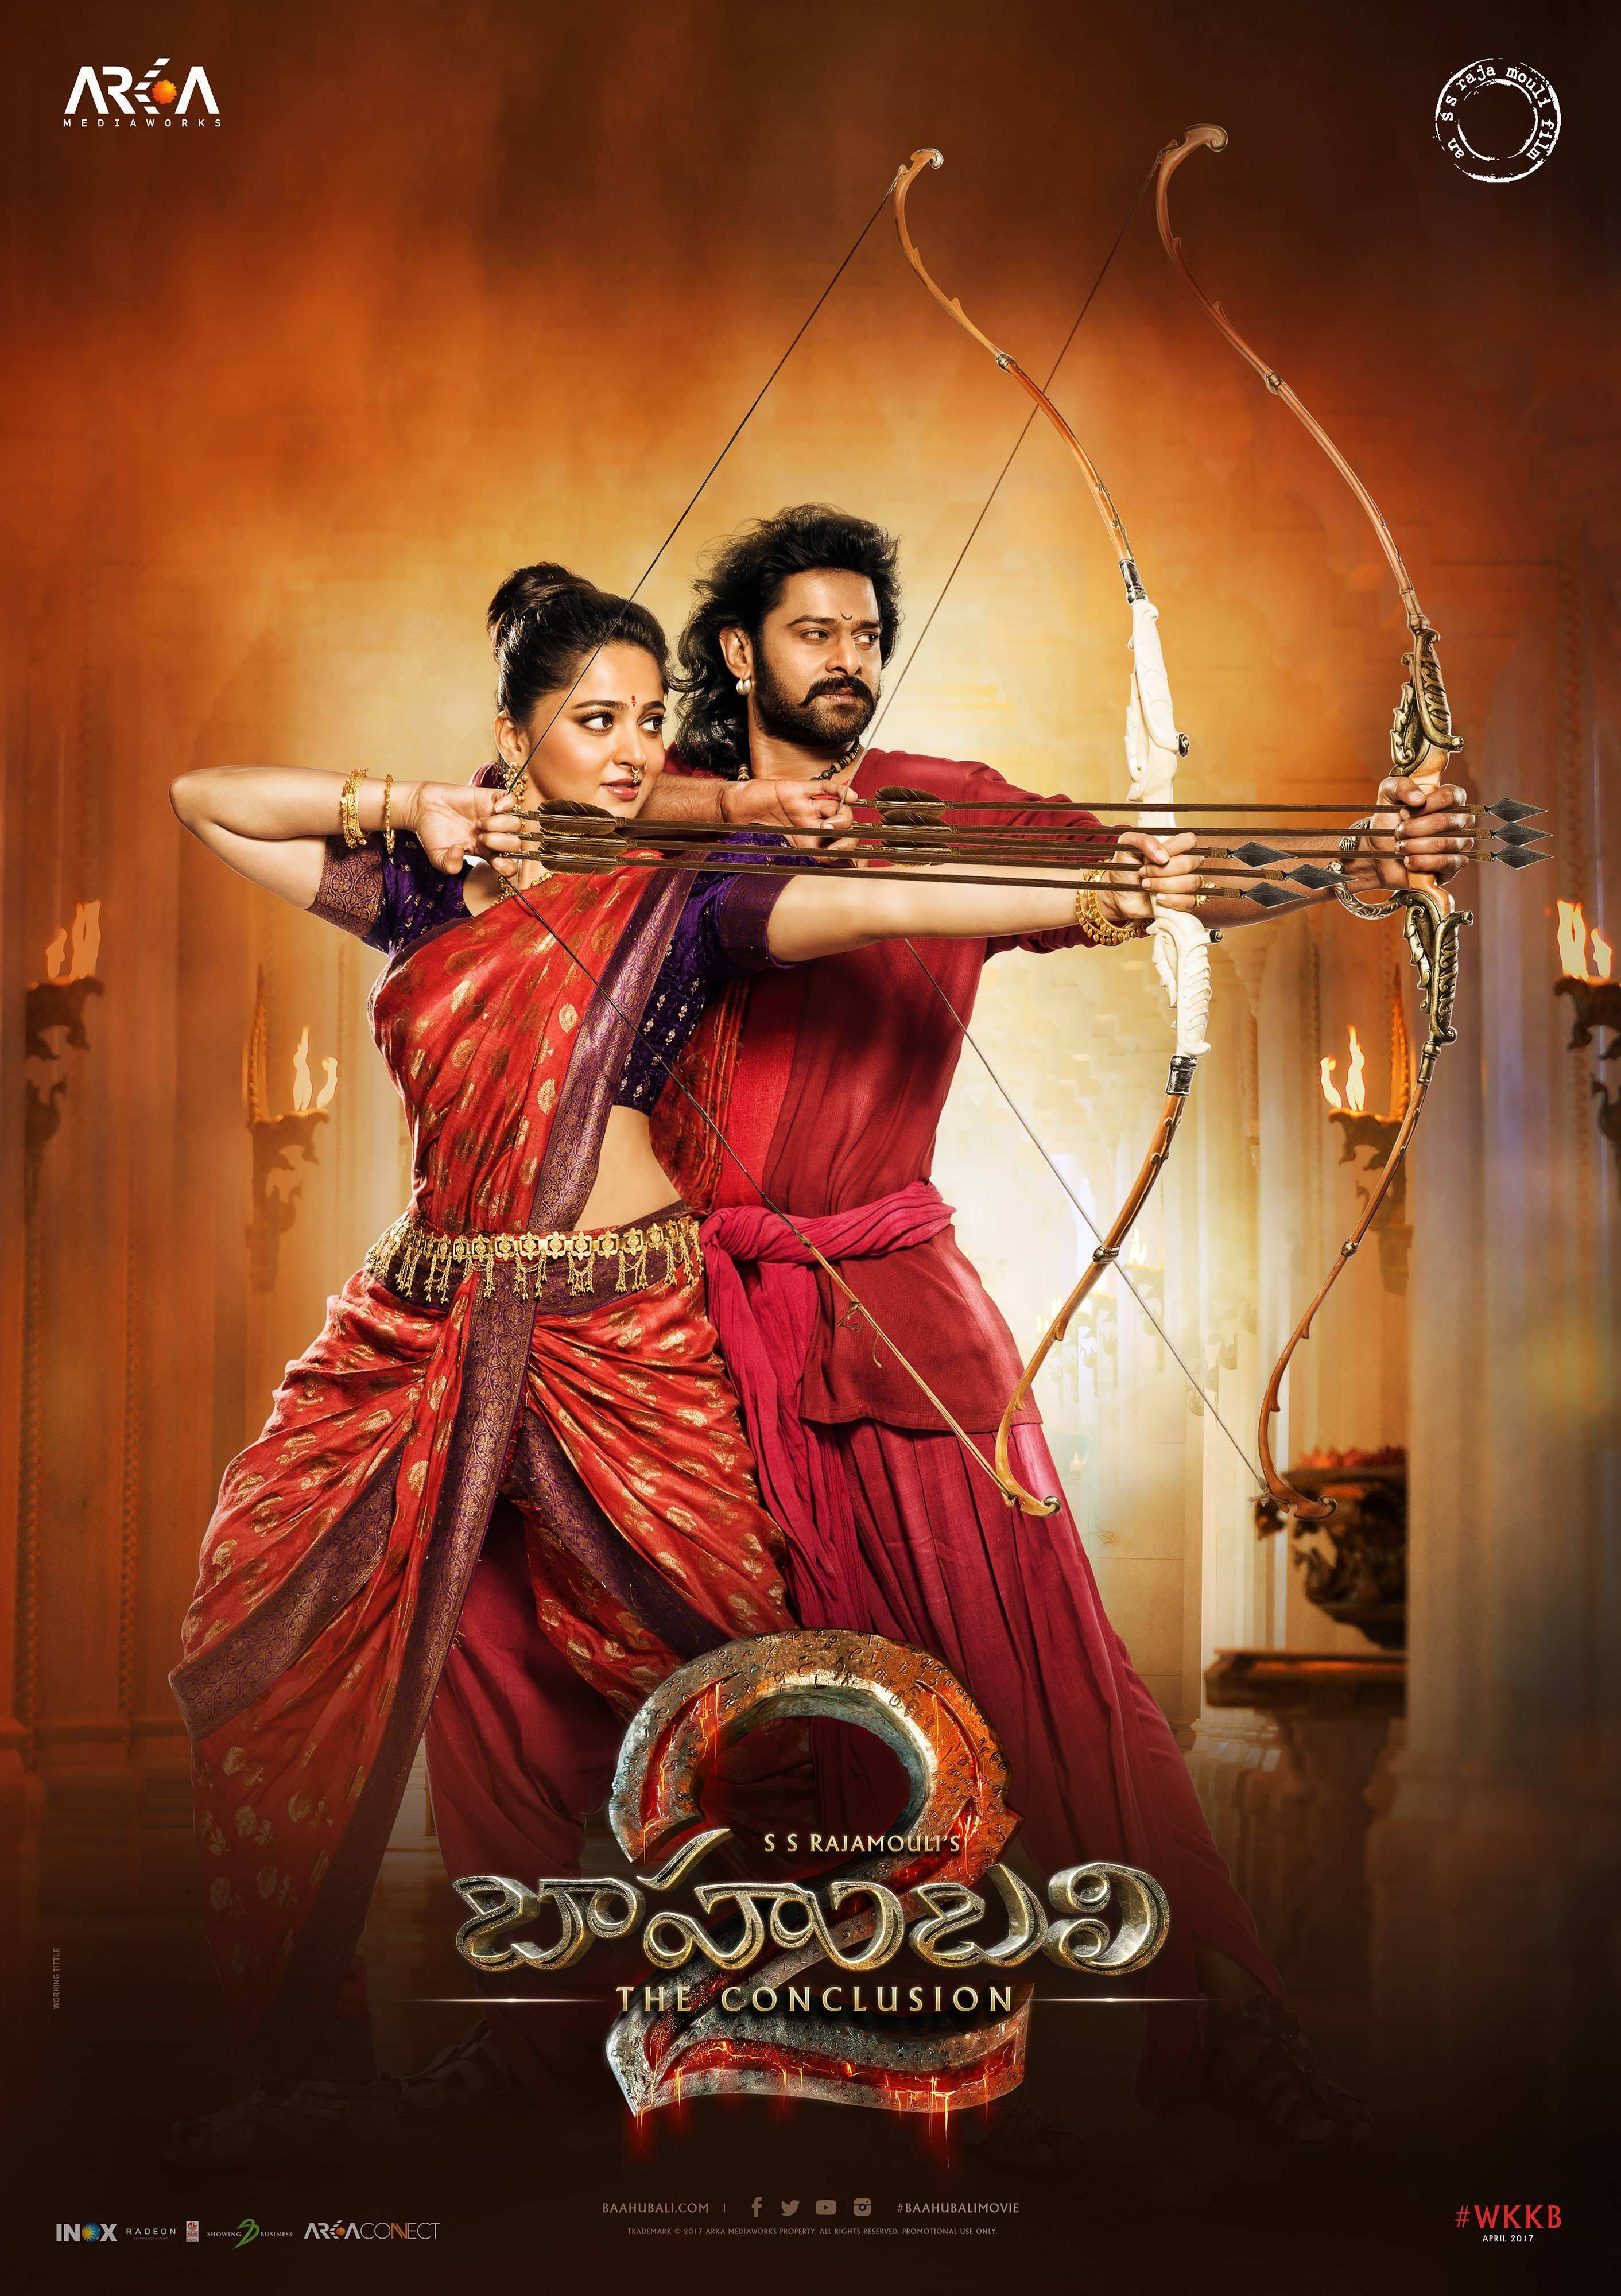 Baahubali 2 The Conclusion (2017) INDIAN MOVIES in 2019